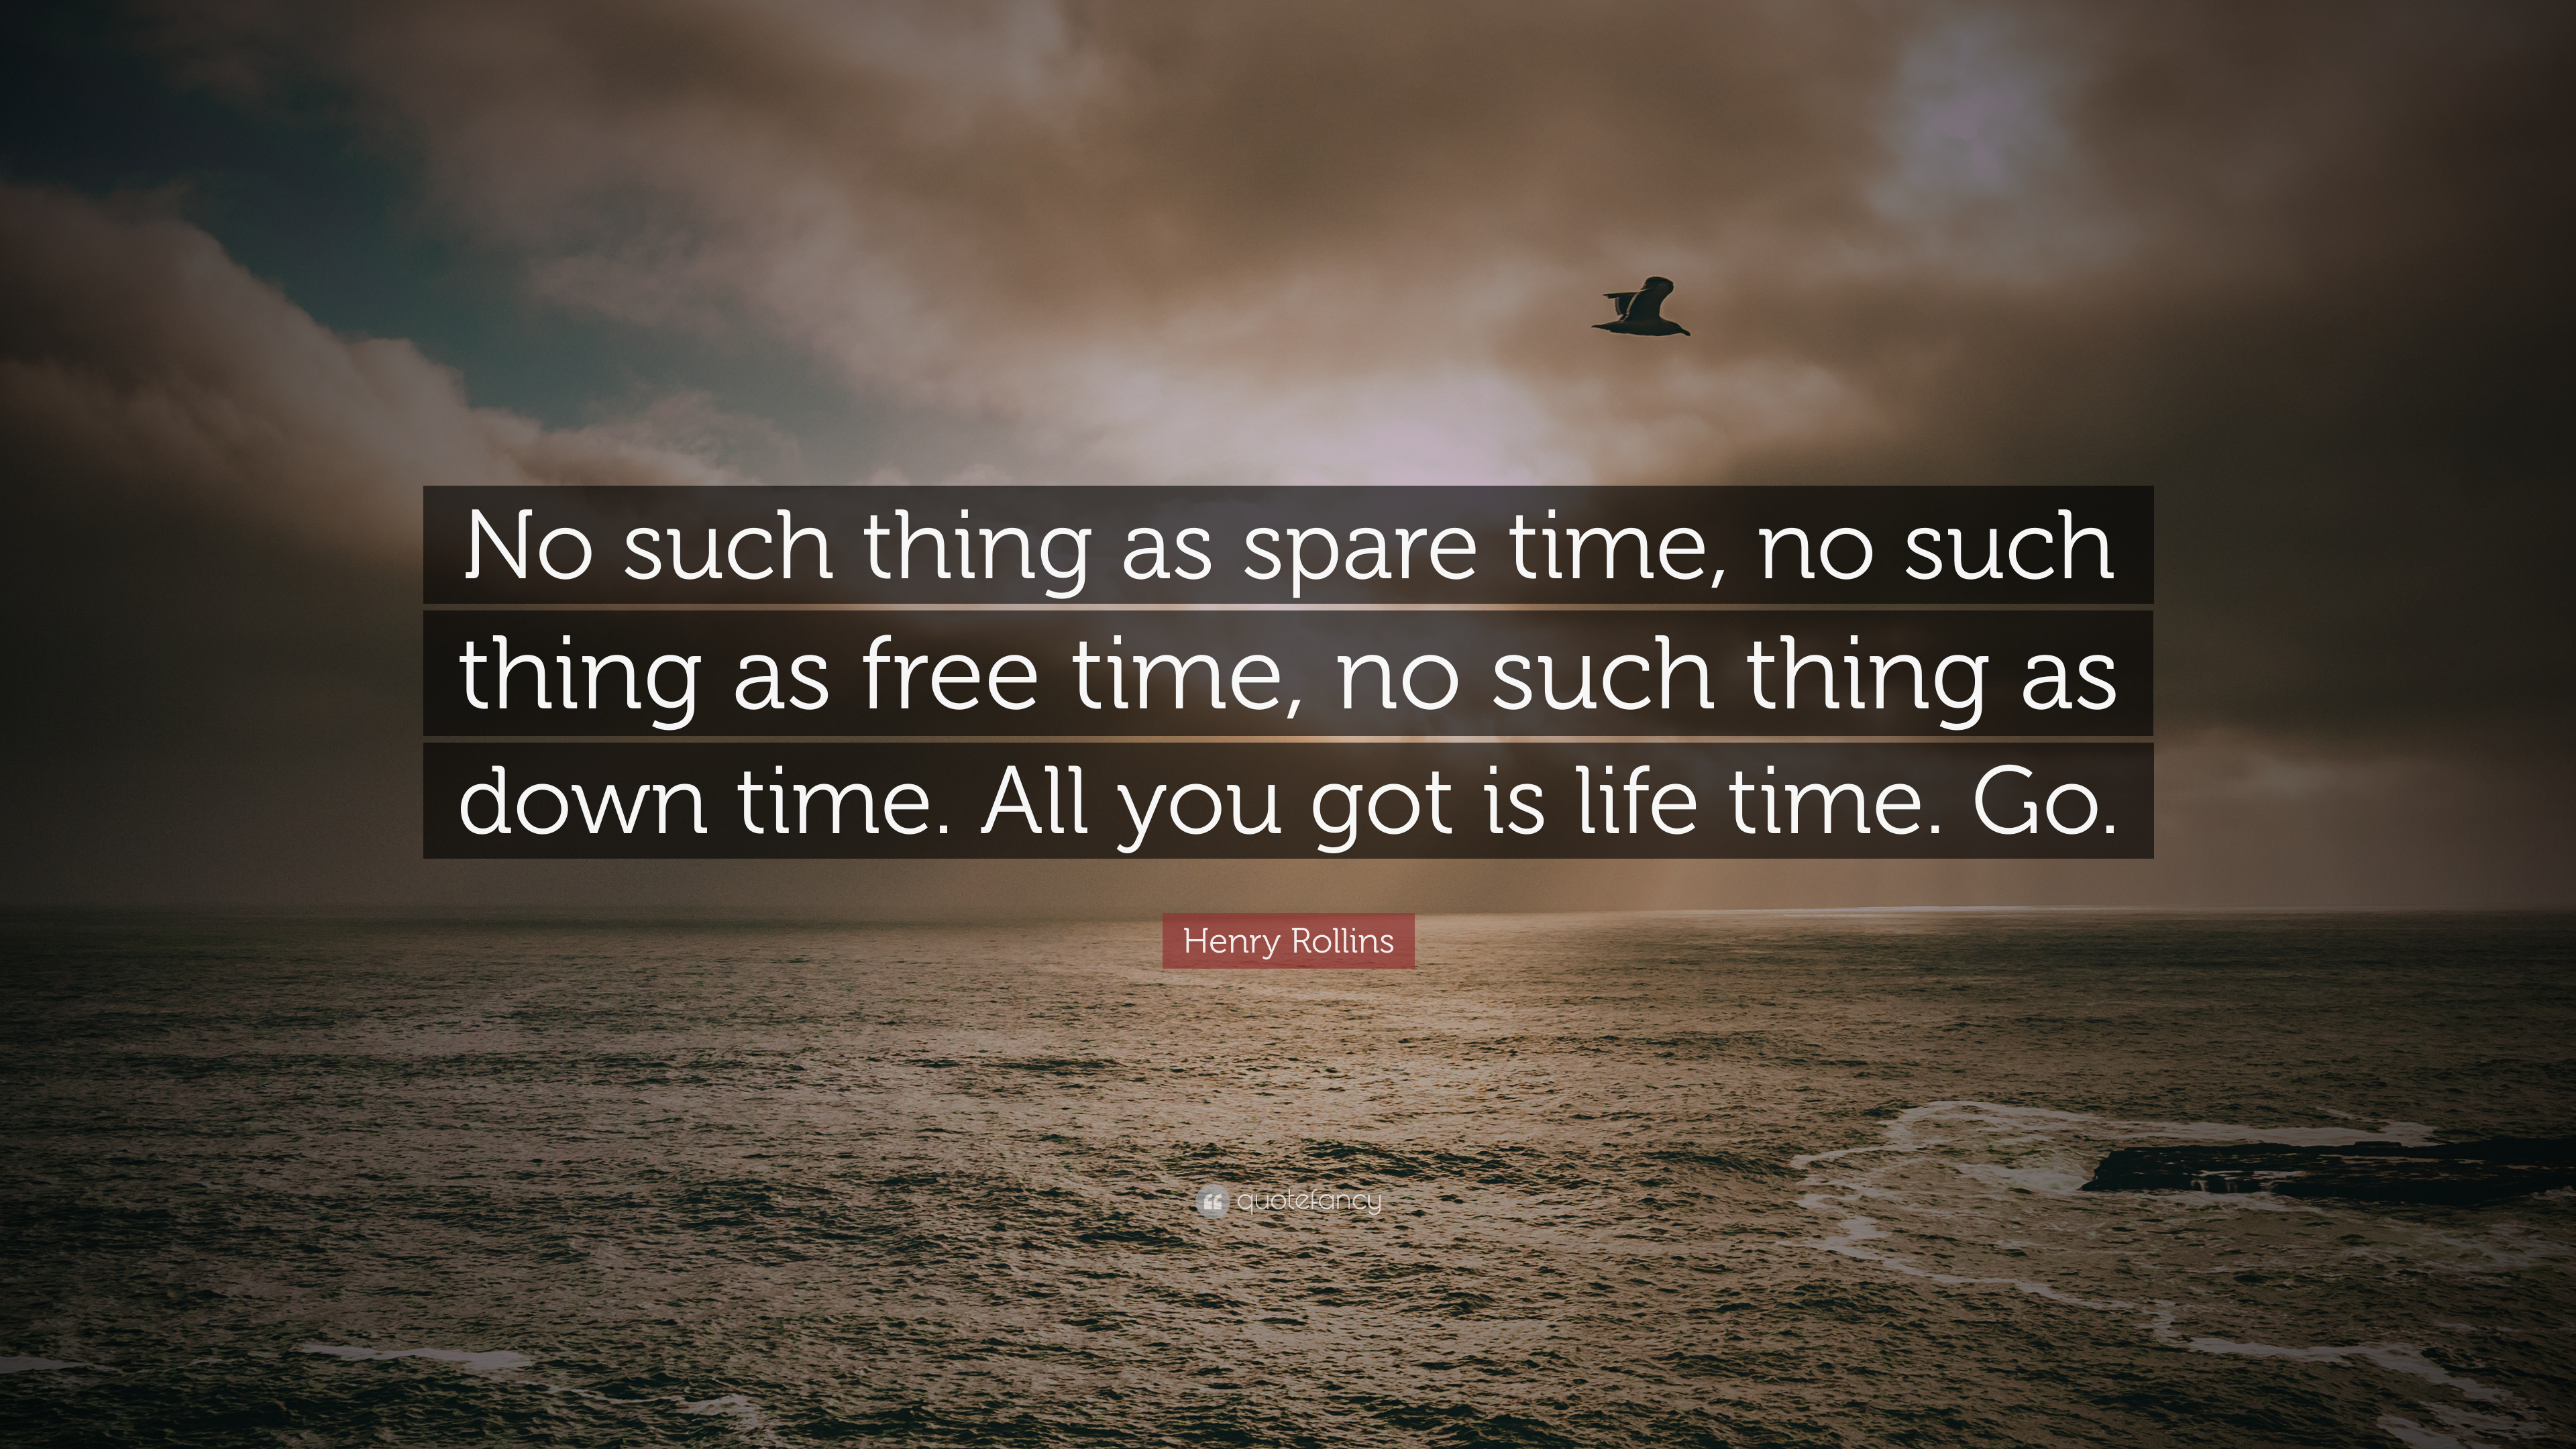 Quotes about free time